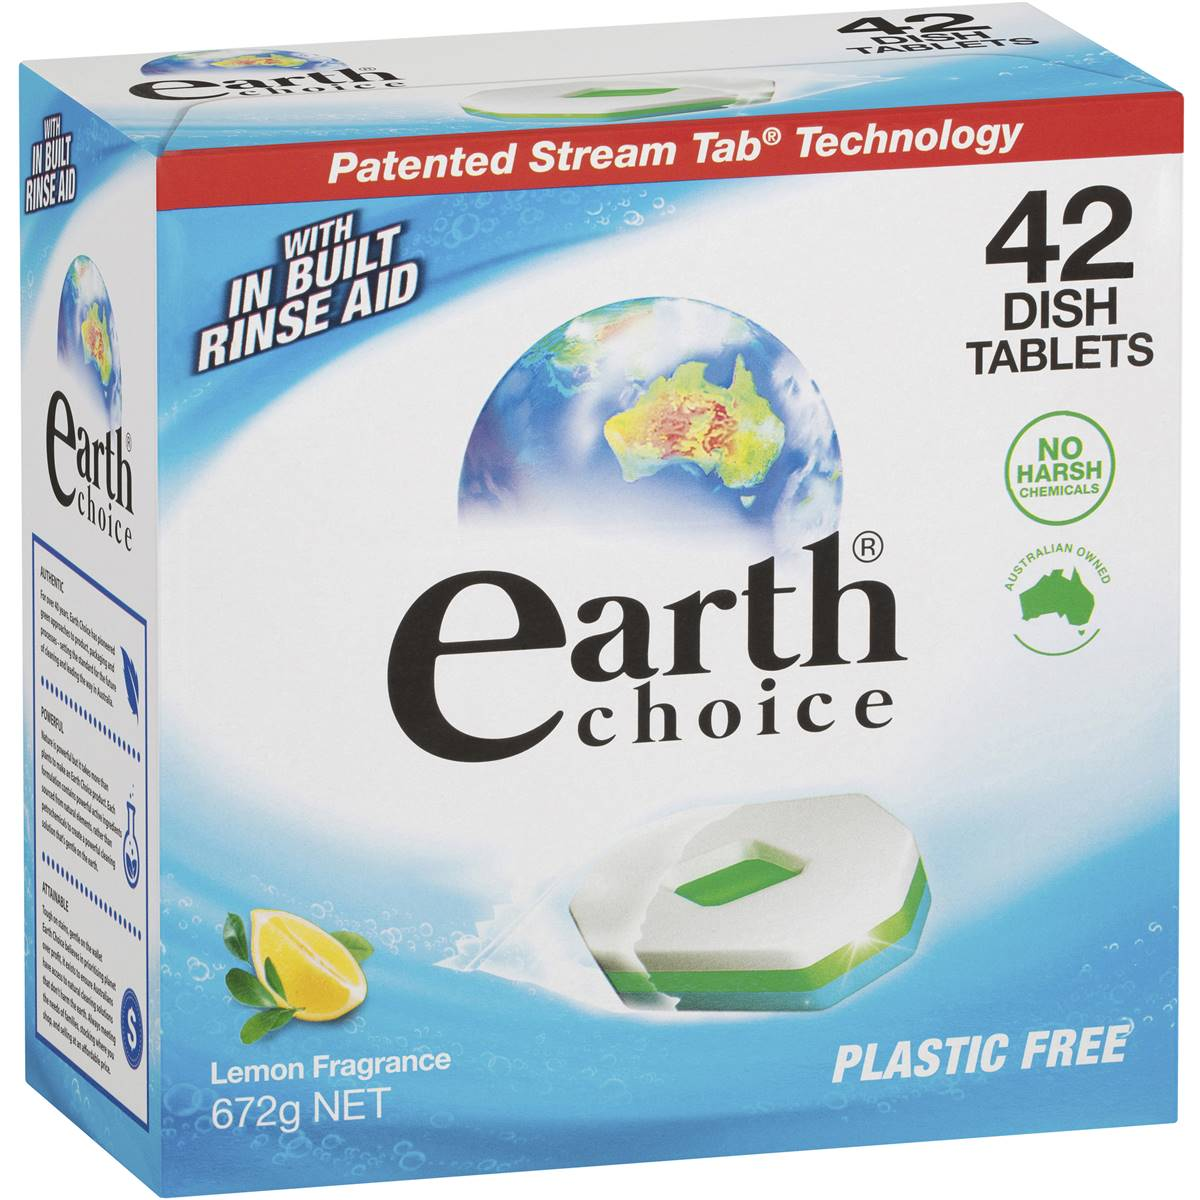 Earth Choice dishwasher detergent review